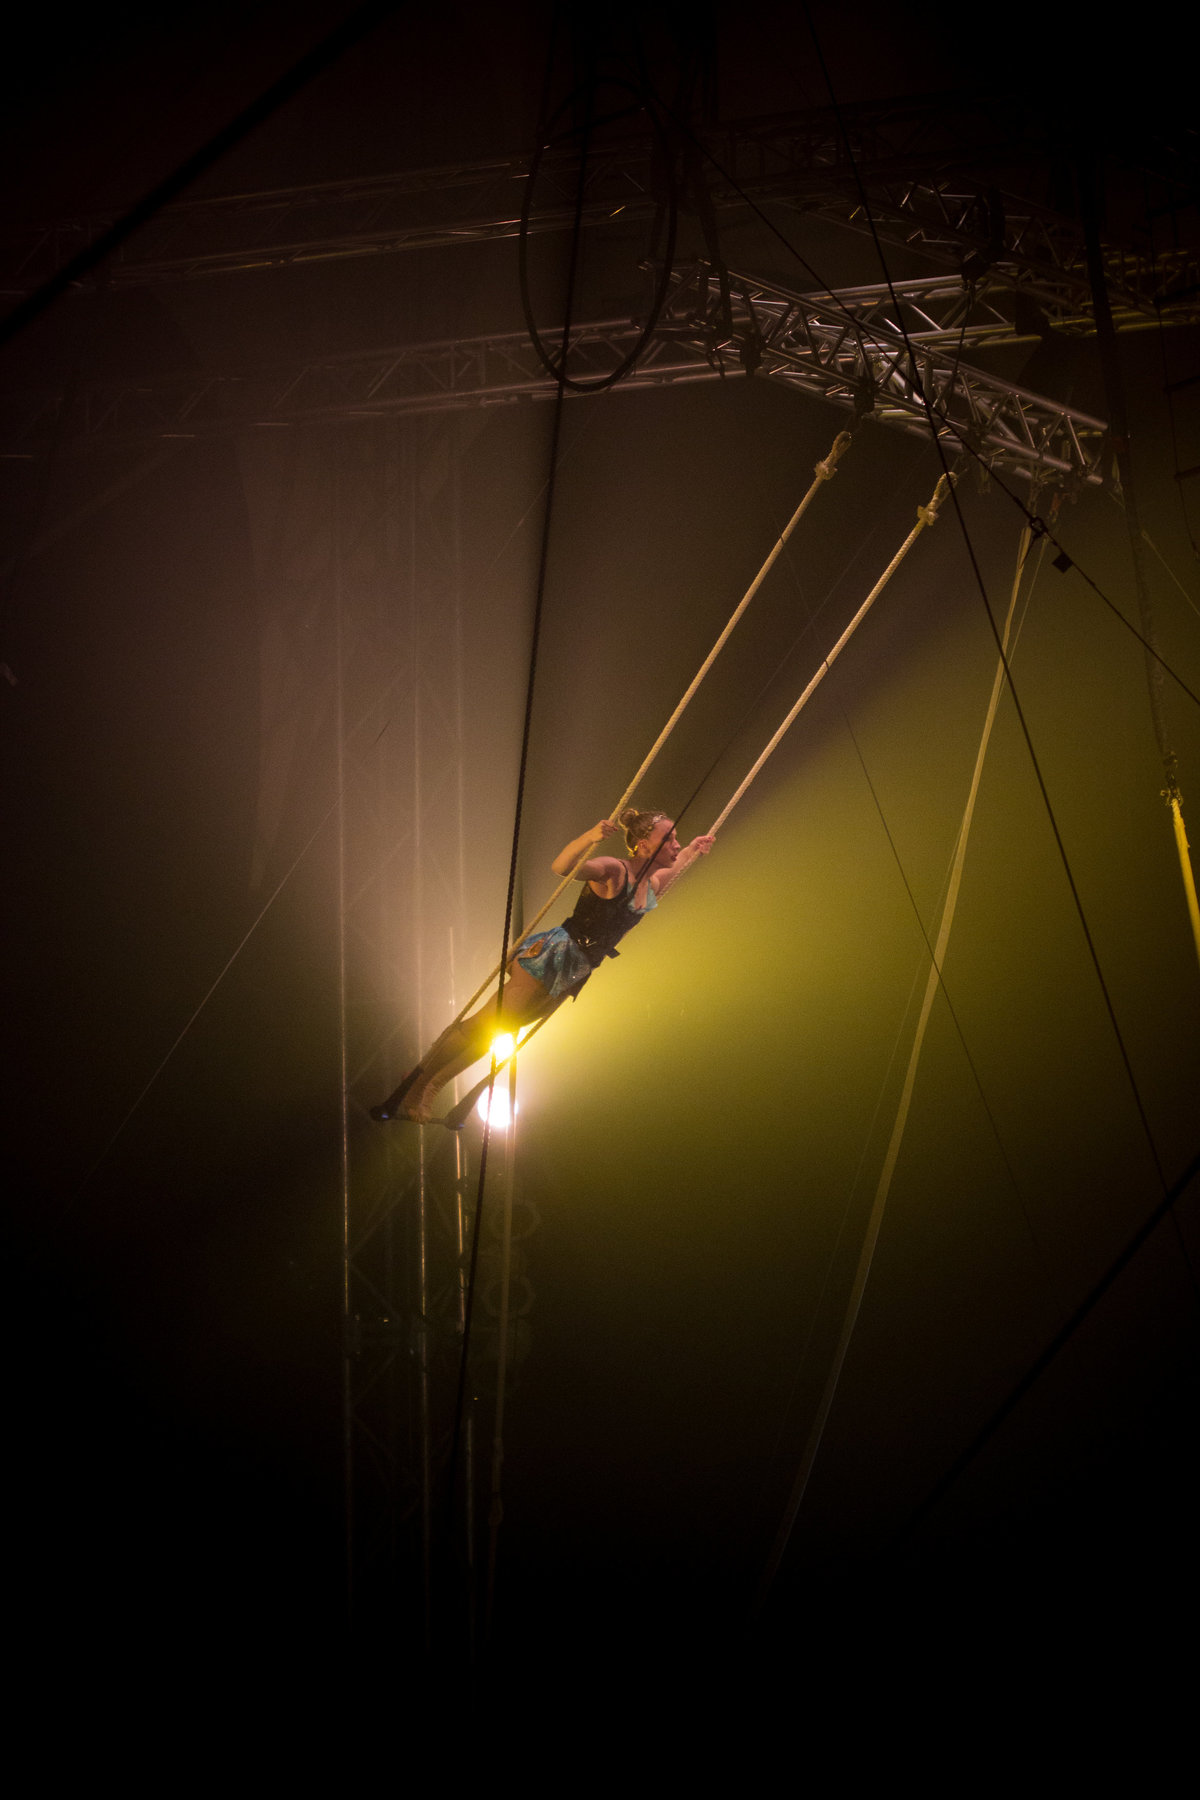 Florida_Circus_Photographer_014